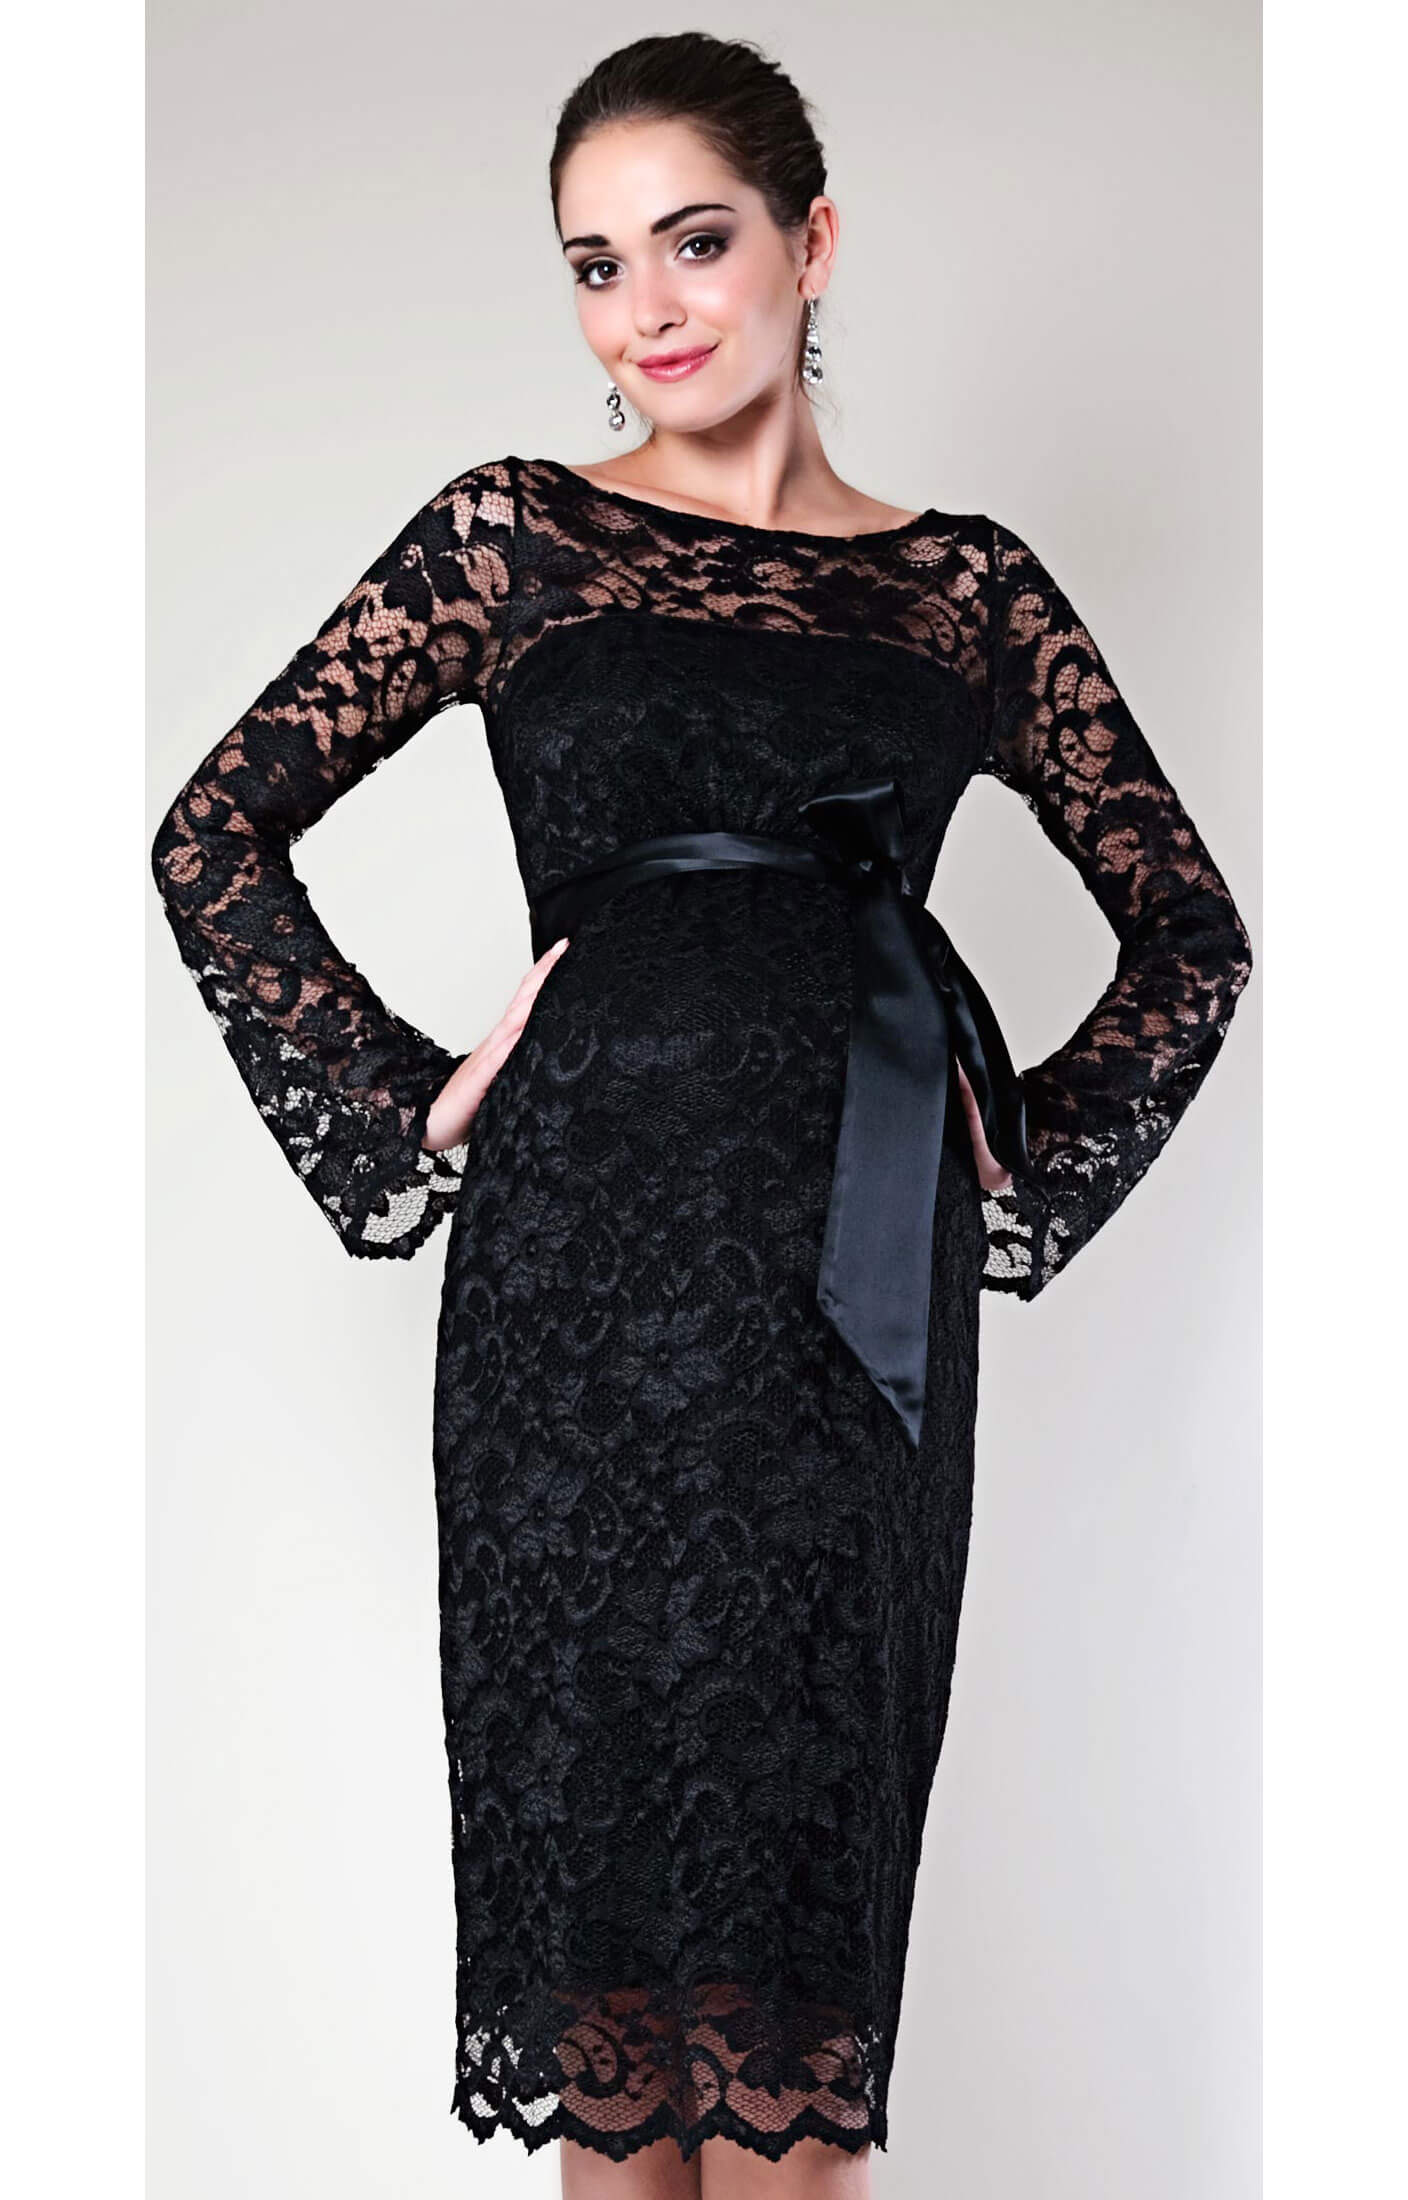 Chloe Maternity Dress (Black) - Maternity Wedding Dresses aed0c9dbf0b3